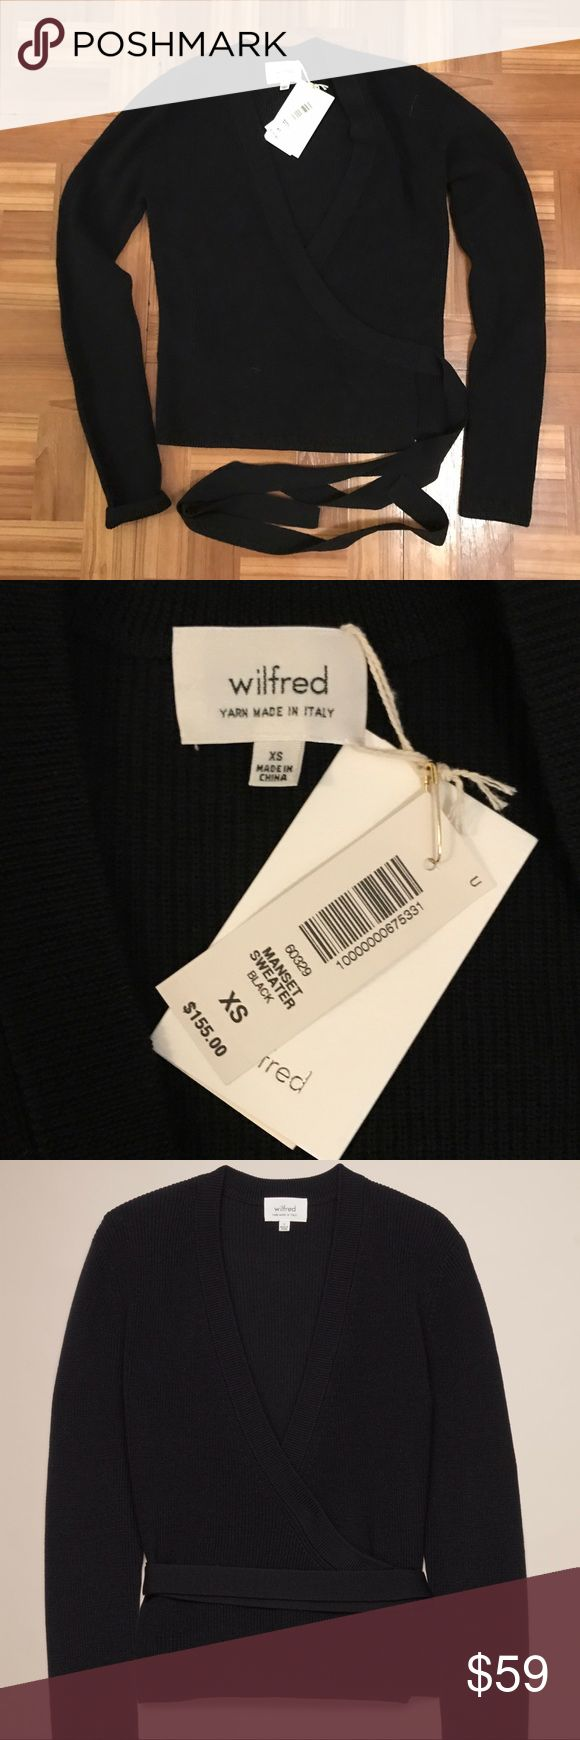 ARITZIA NWT MANSET black wrap sweater XS Brand new, never worn Aritzia 'manset' wrap sweater in black XS. Including the cream image so you can see how this looks on. Perfect condition! Wilfred reinvents the dancer wrap in Italian-milled virgin wool that's luxe, lightweight and warm.   Features Keyhole at the right side seam for the belt Fit: Slim — streamlined to fit close to the body Sizing: Fits true to size. Take your normal size Model is 5'11/180cm wearing a size S Content: 100% virgin…